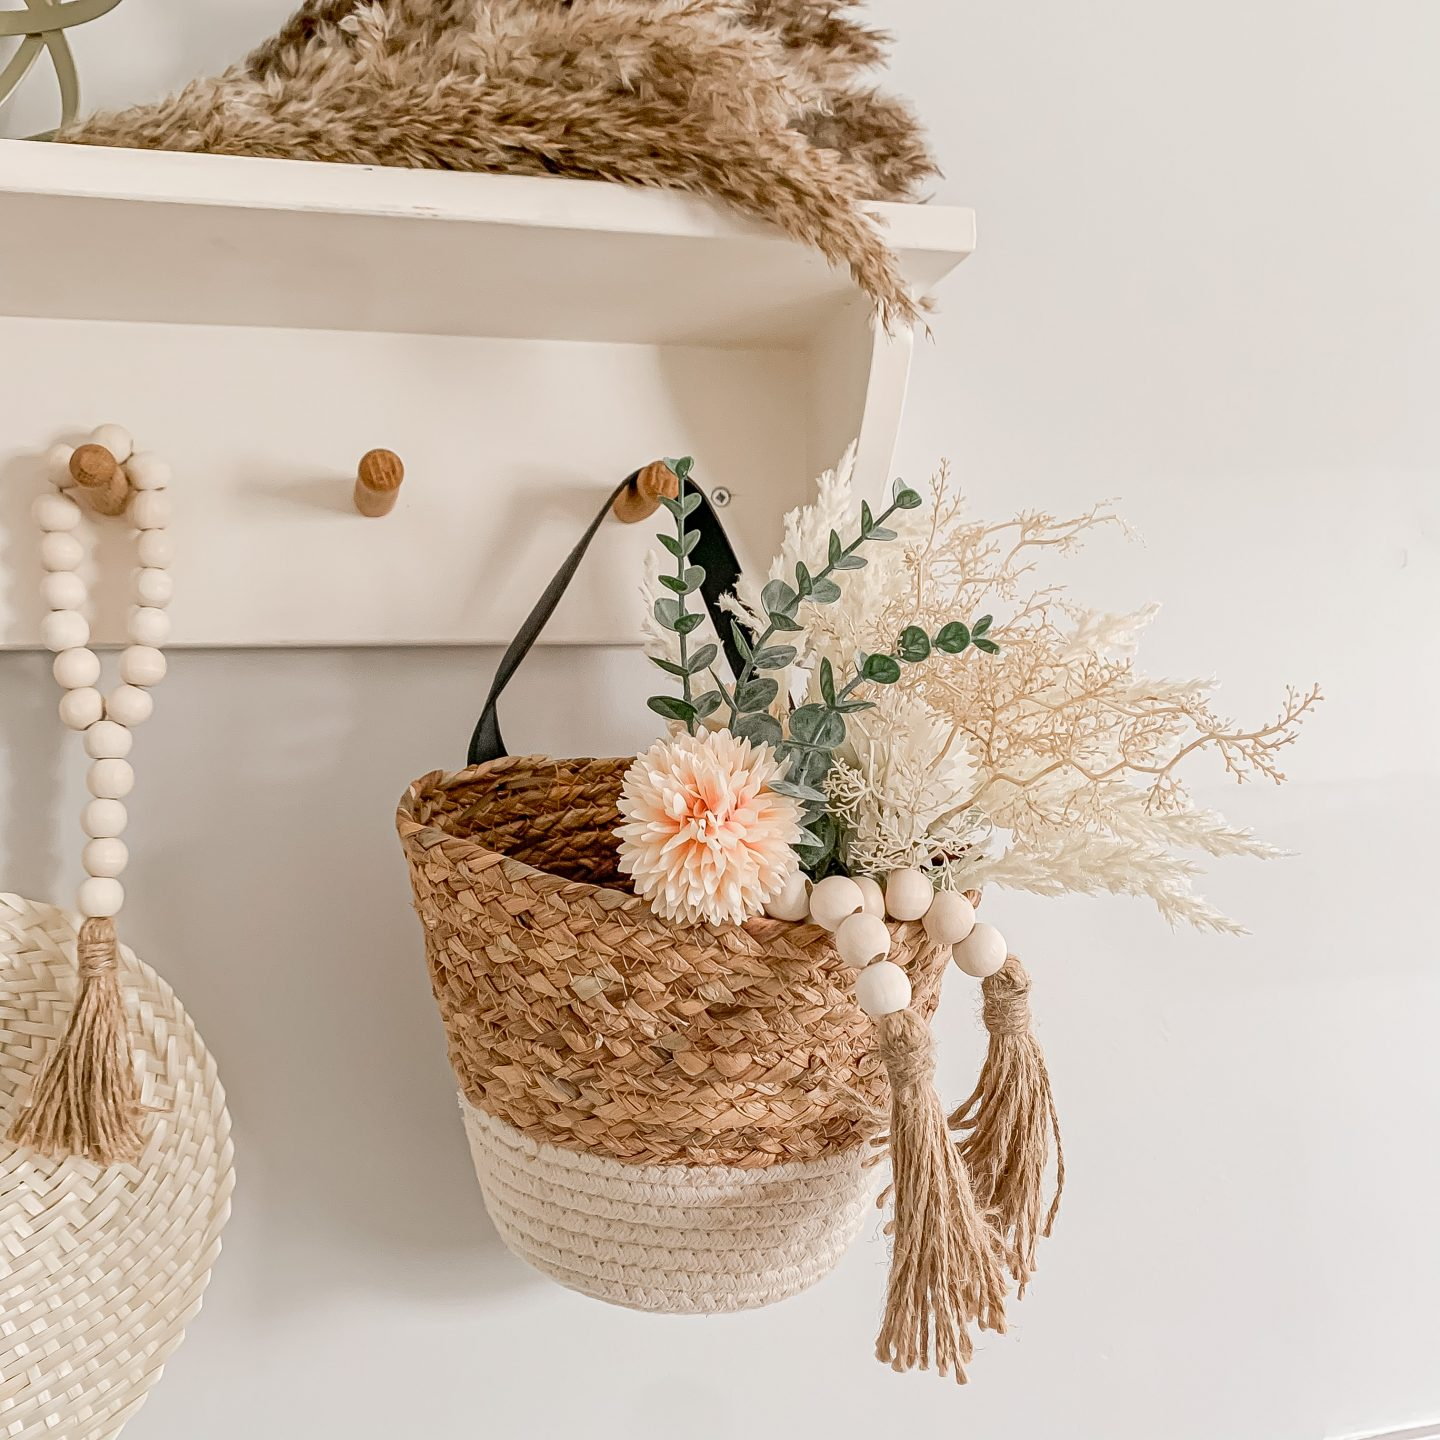 6 WAYS TO STYLE OUR BOHO PAMPAS BUNCHES